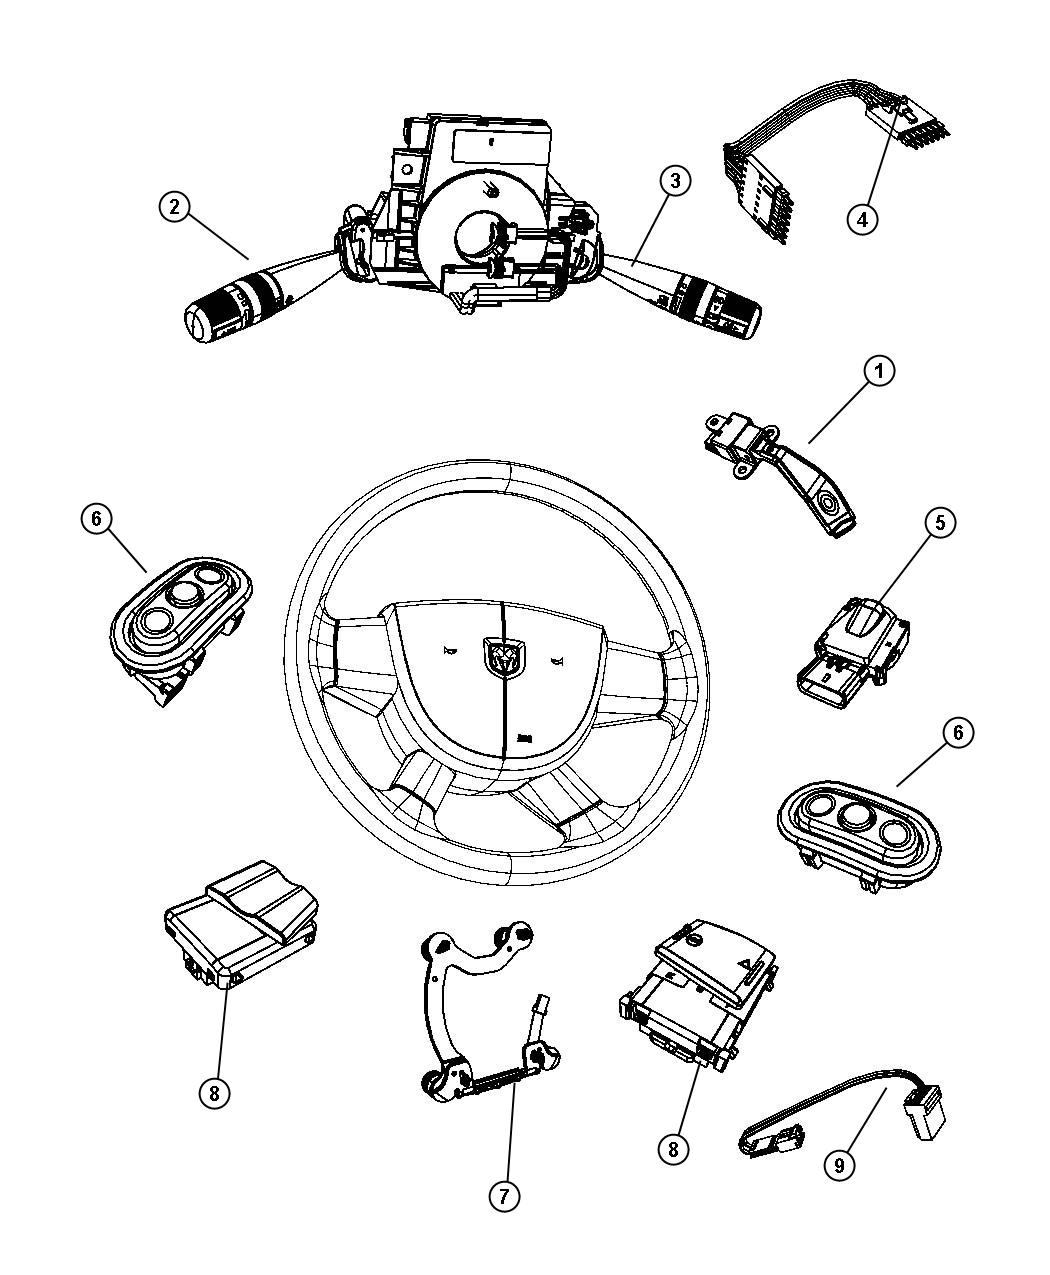 Dodge Nitro Horn And Steering Wheel Buttons Forum Reverse Light Wiring Diagram Are You Talking About Replacing Switch 04685728ab As Shown 6 Right Side In This Image